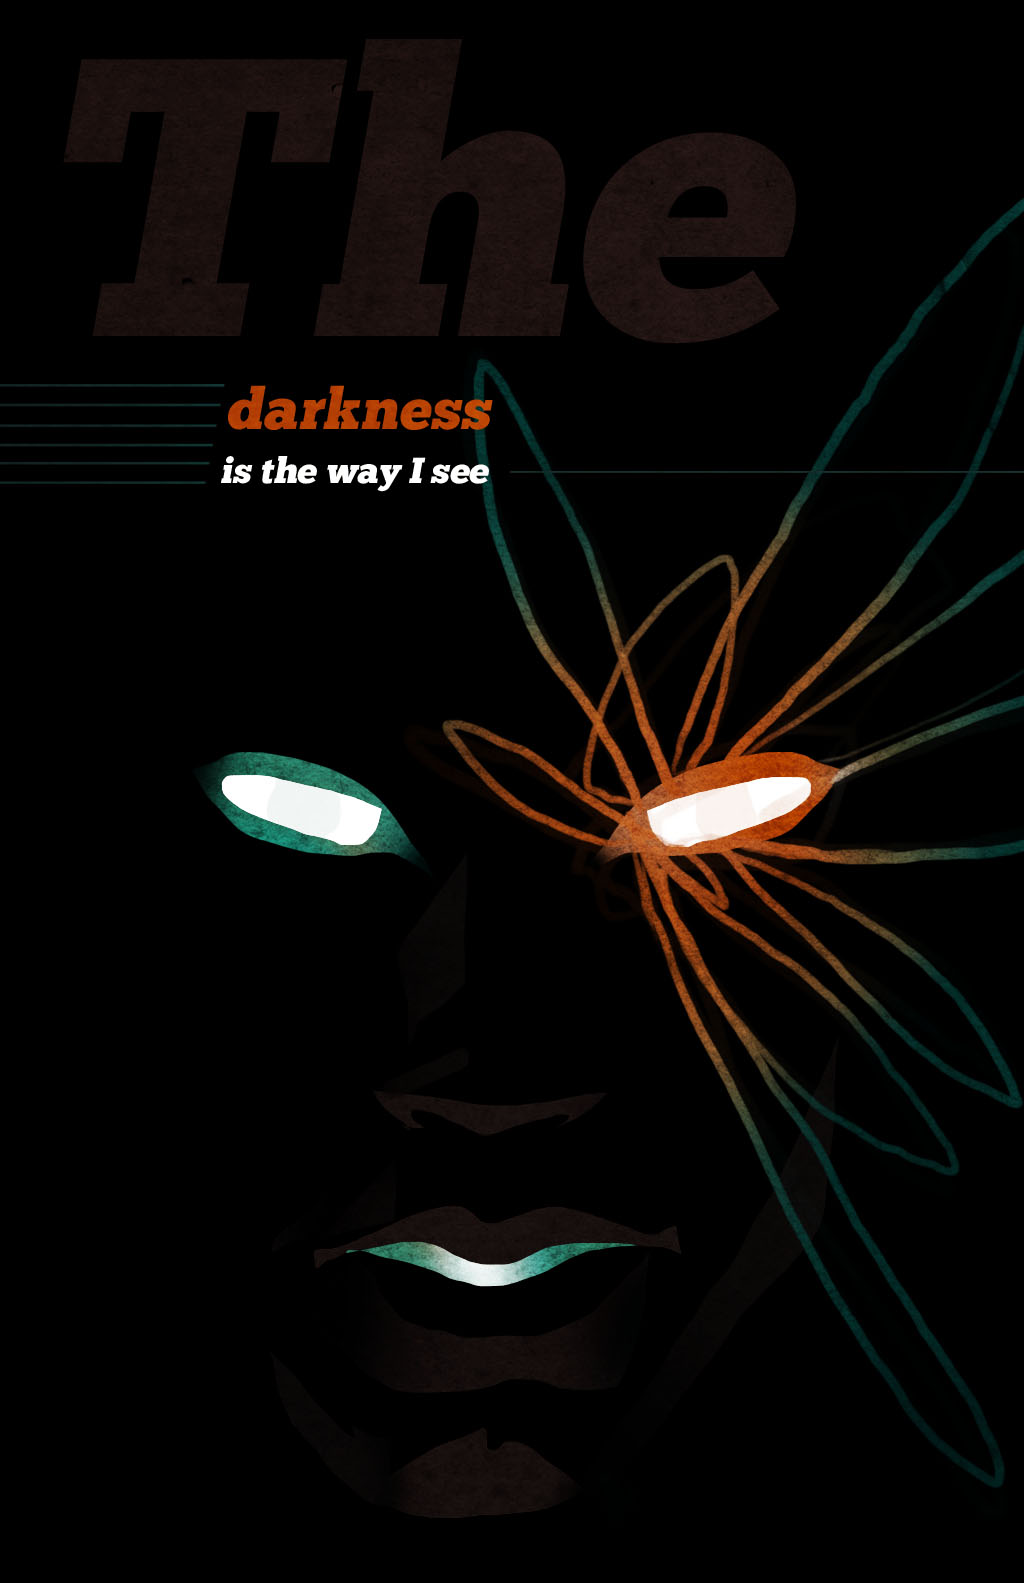 The darkness is the way I see